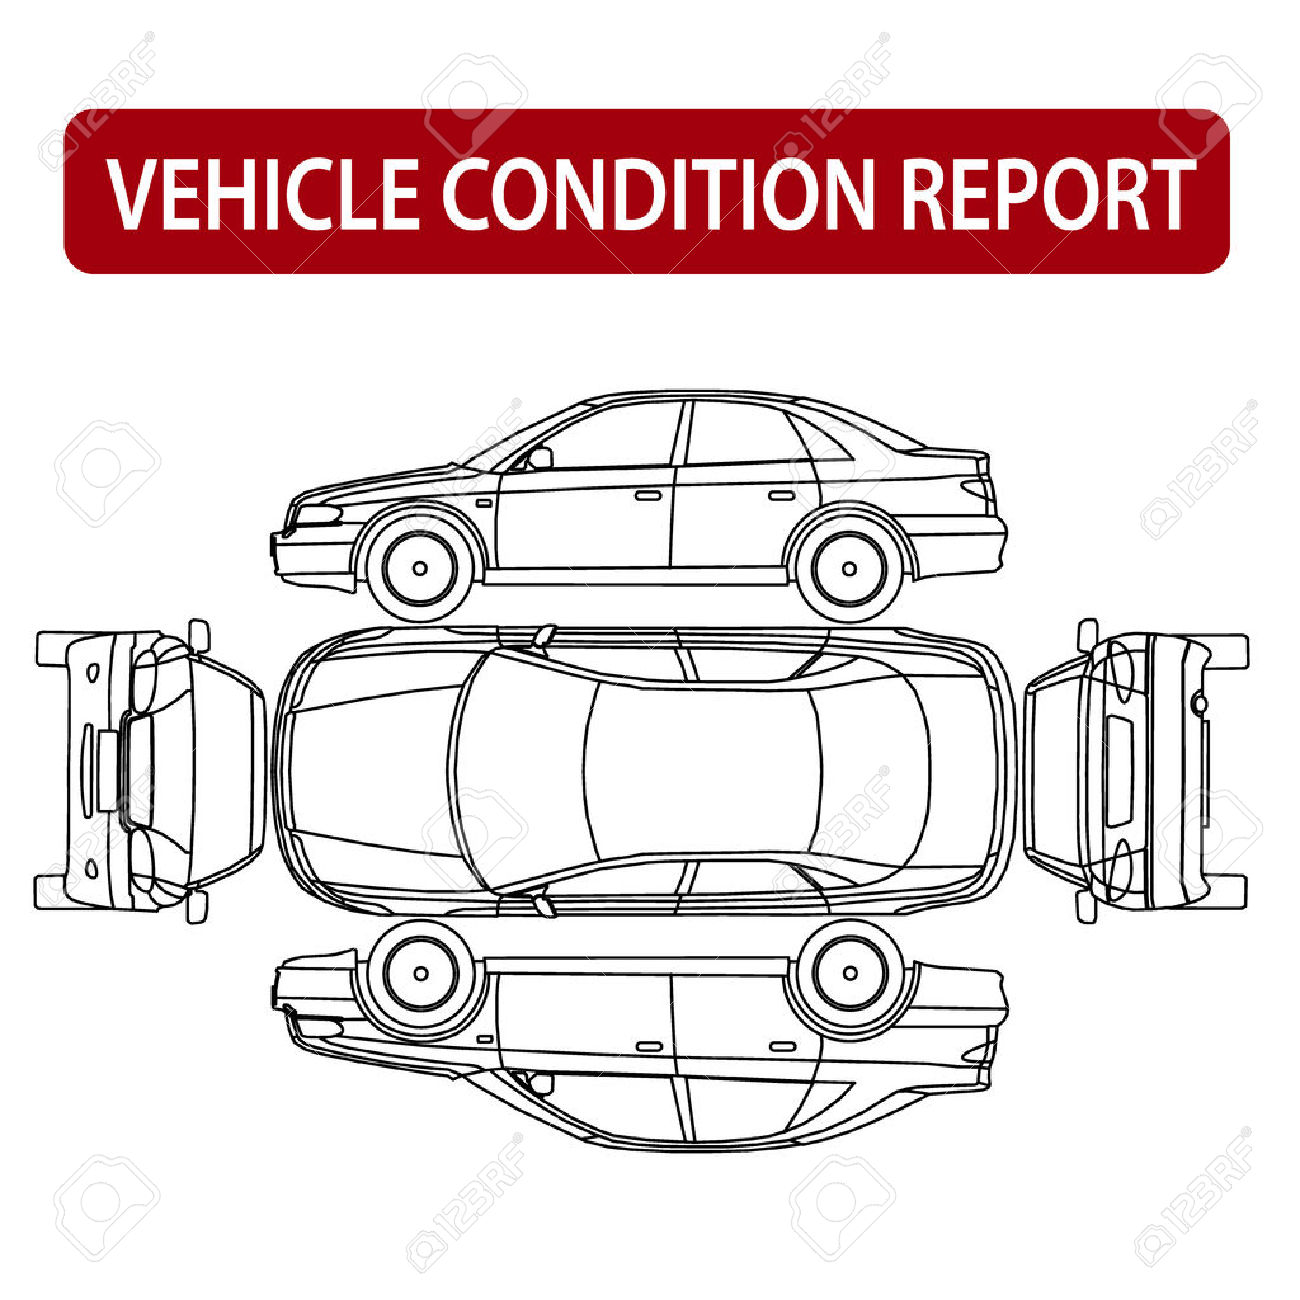 Clipart car inspection sheet png transparent download Vehicle Condition Report Car Checklist, Auto Damage Inspection ... png transparent download